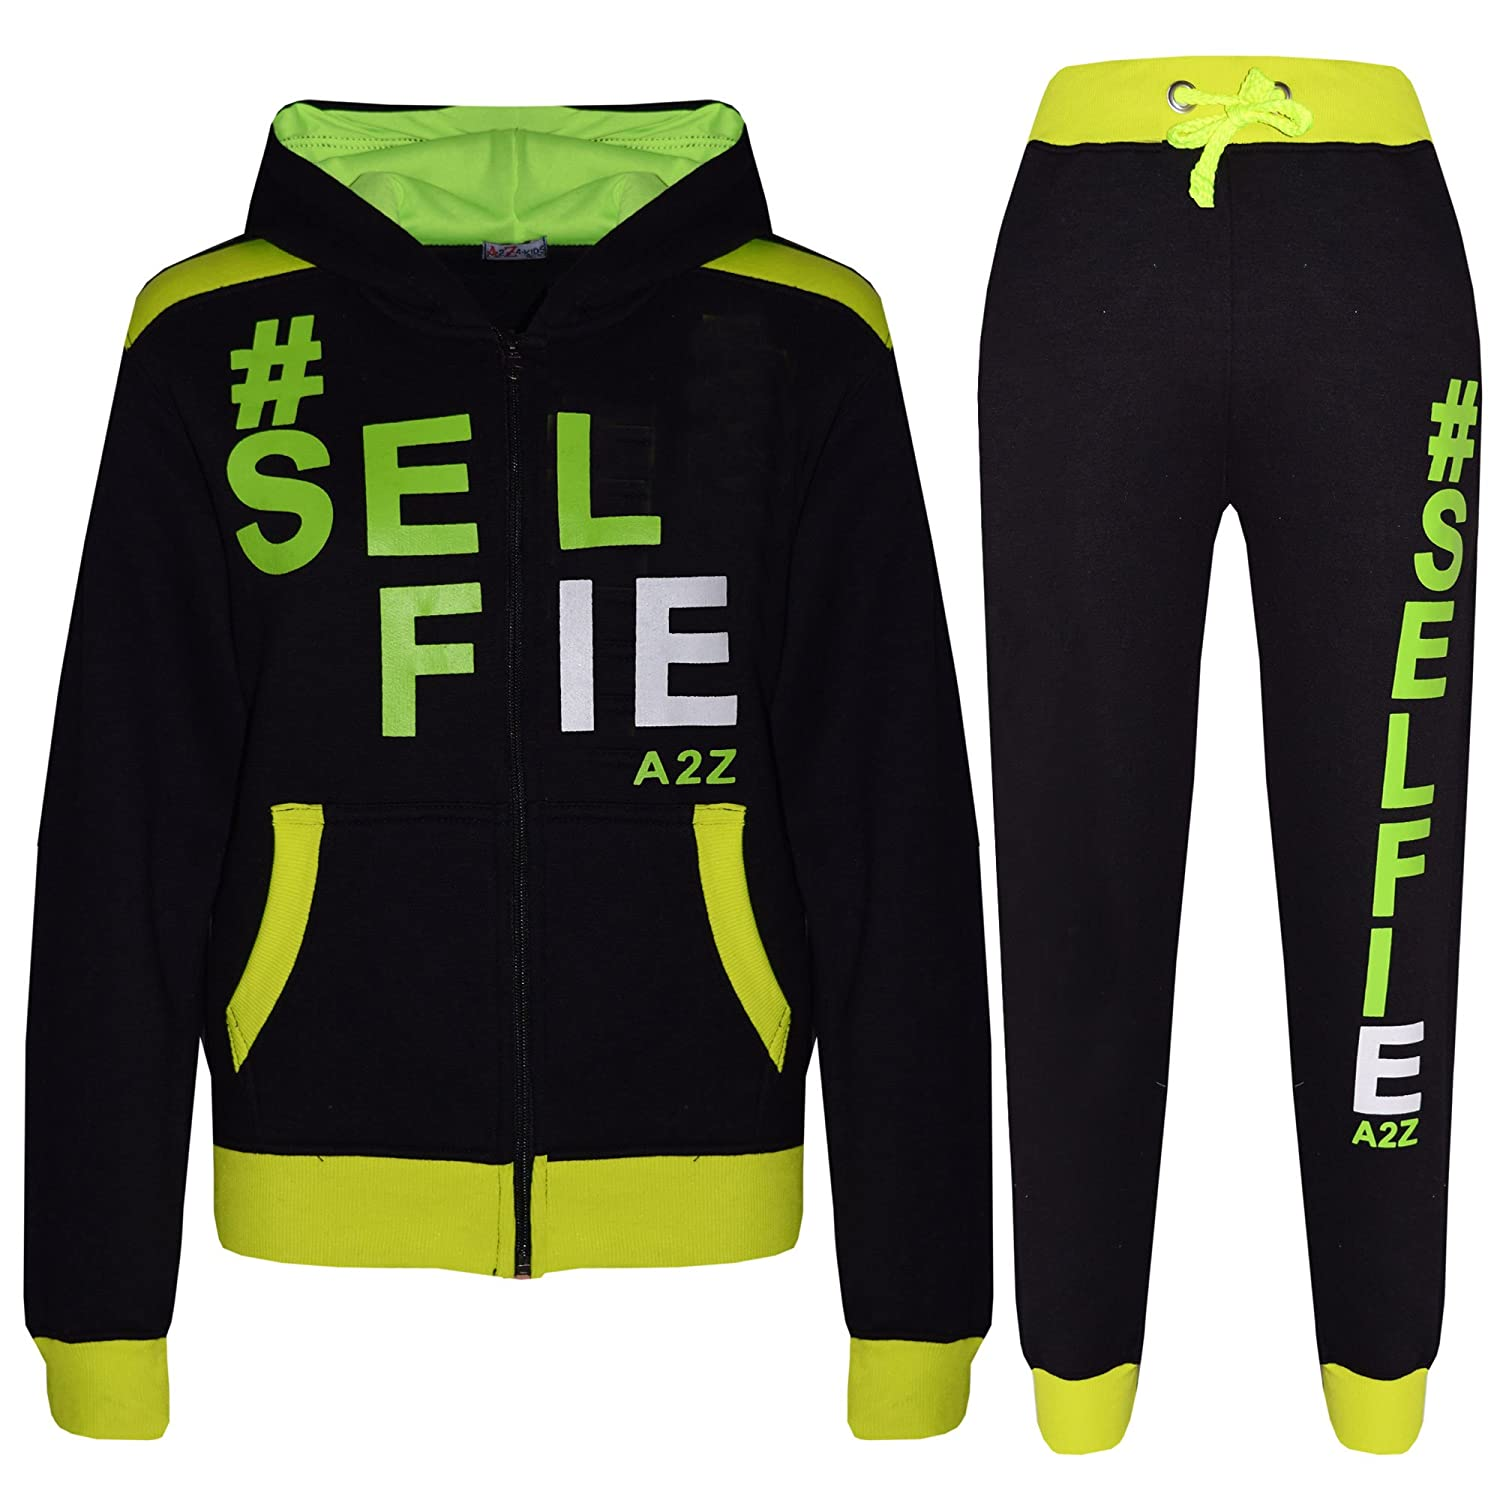 A2Z 4 Kids® Kids Tracksuit Girls Boys Designer's #Selfie Jogging Suit Hooded Top Bottom 7-13